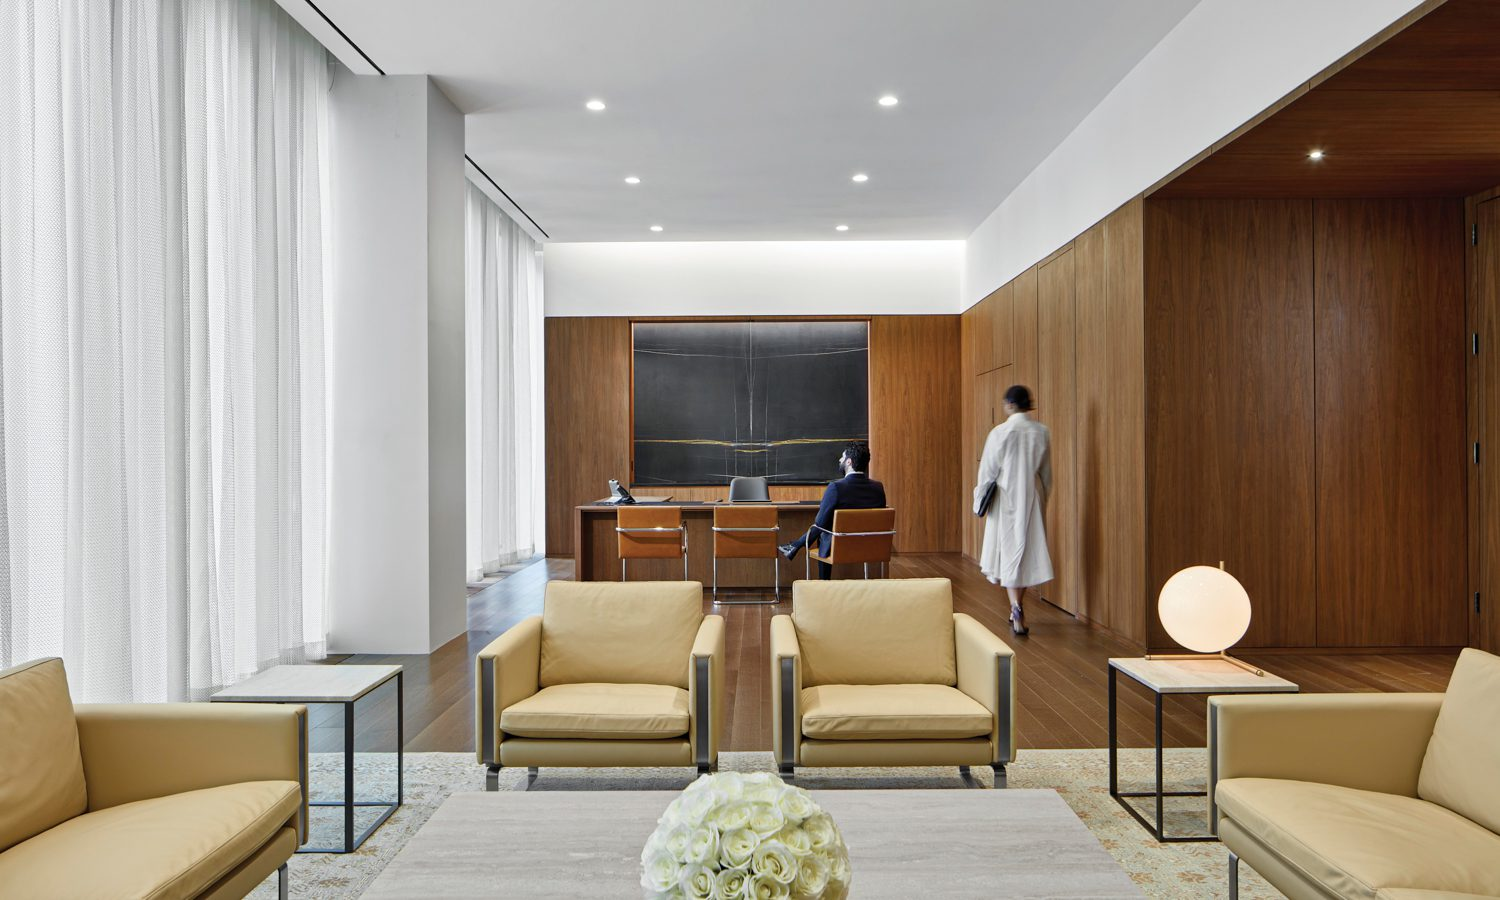 Wegner lounge chairs and sofas, Antonio Citterio coffee and side tables, and a custom rug form the seating area in an ambassador's office, where a marble feature wall frames the custom desk and Mies van der Rohe side chairs.